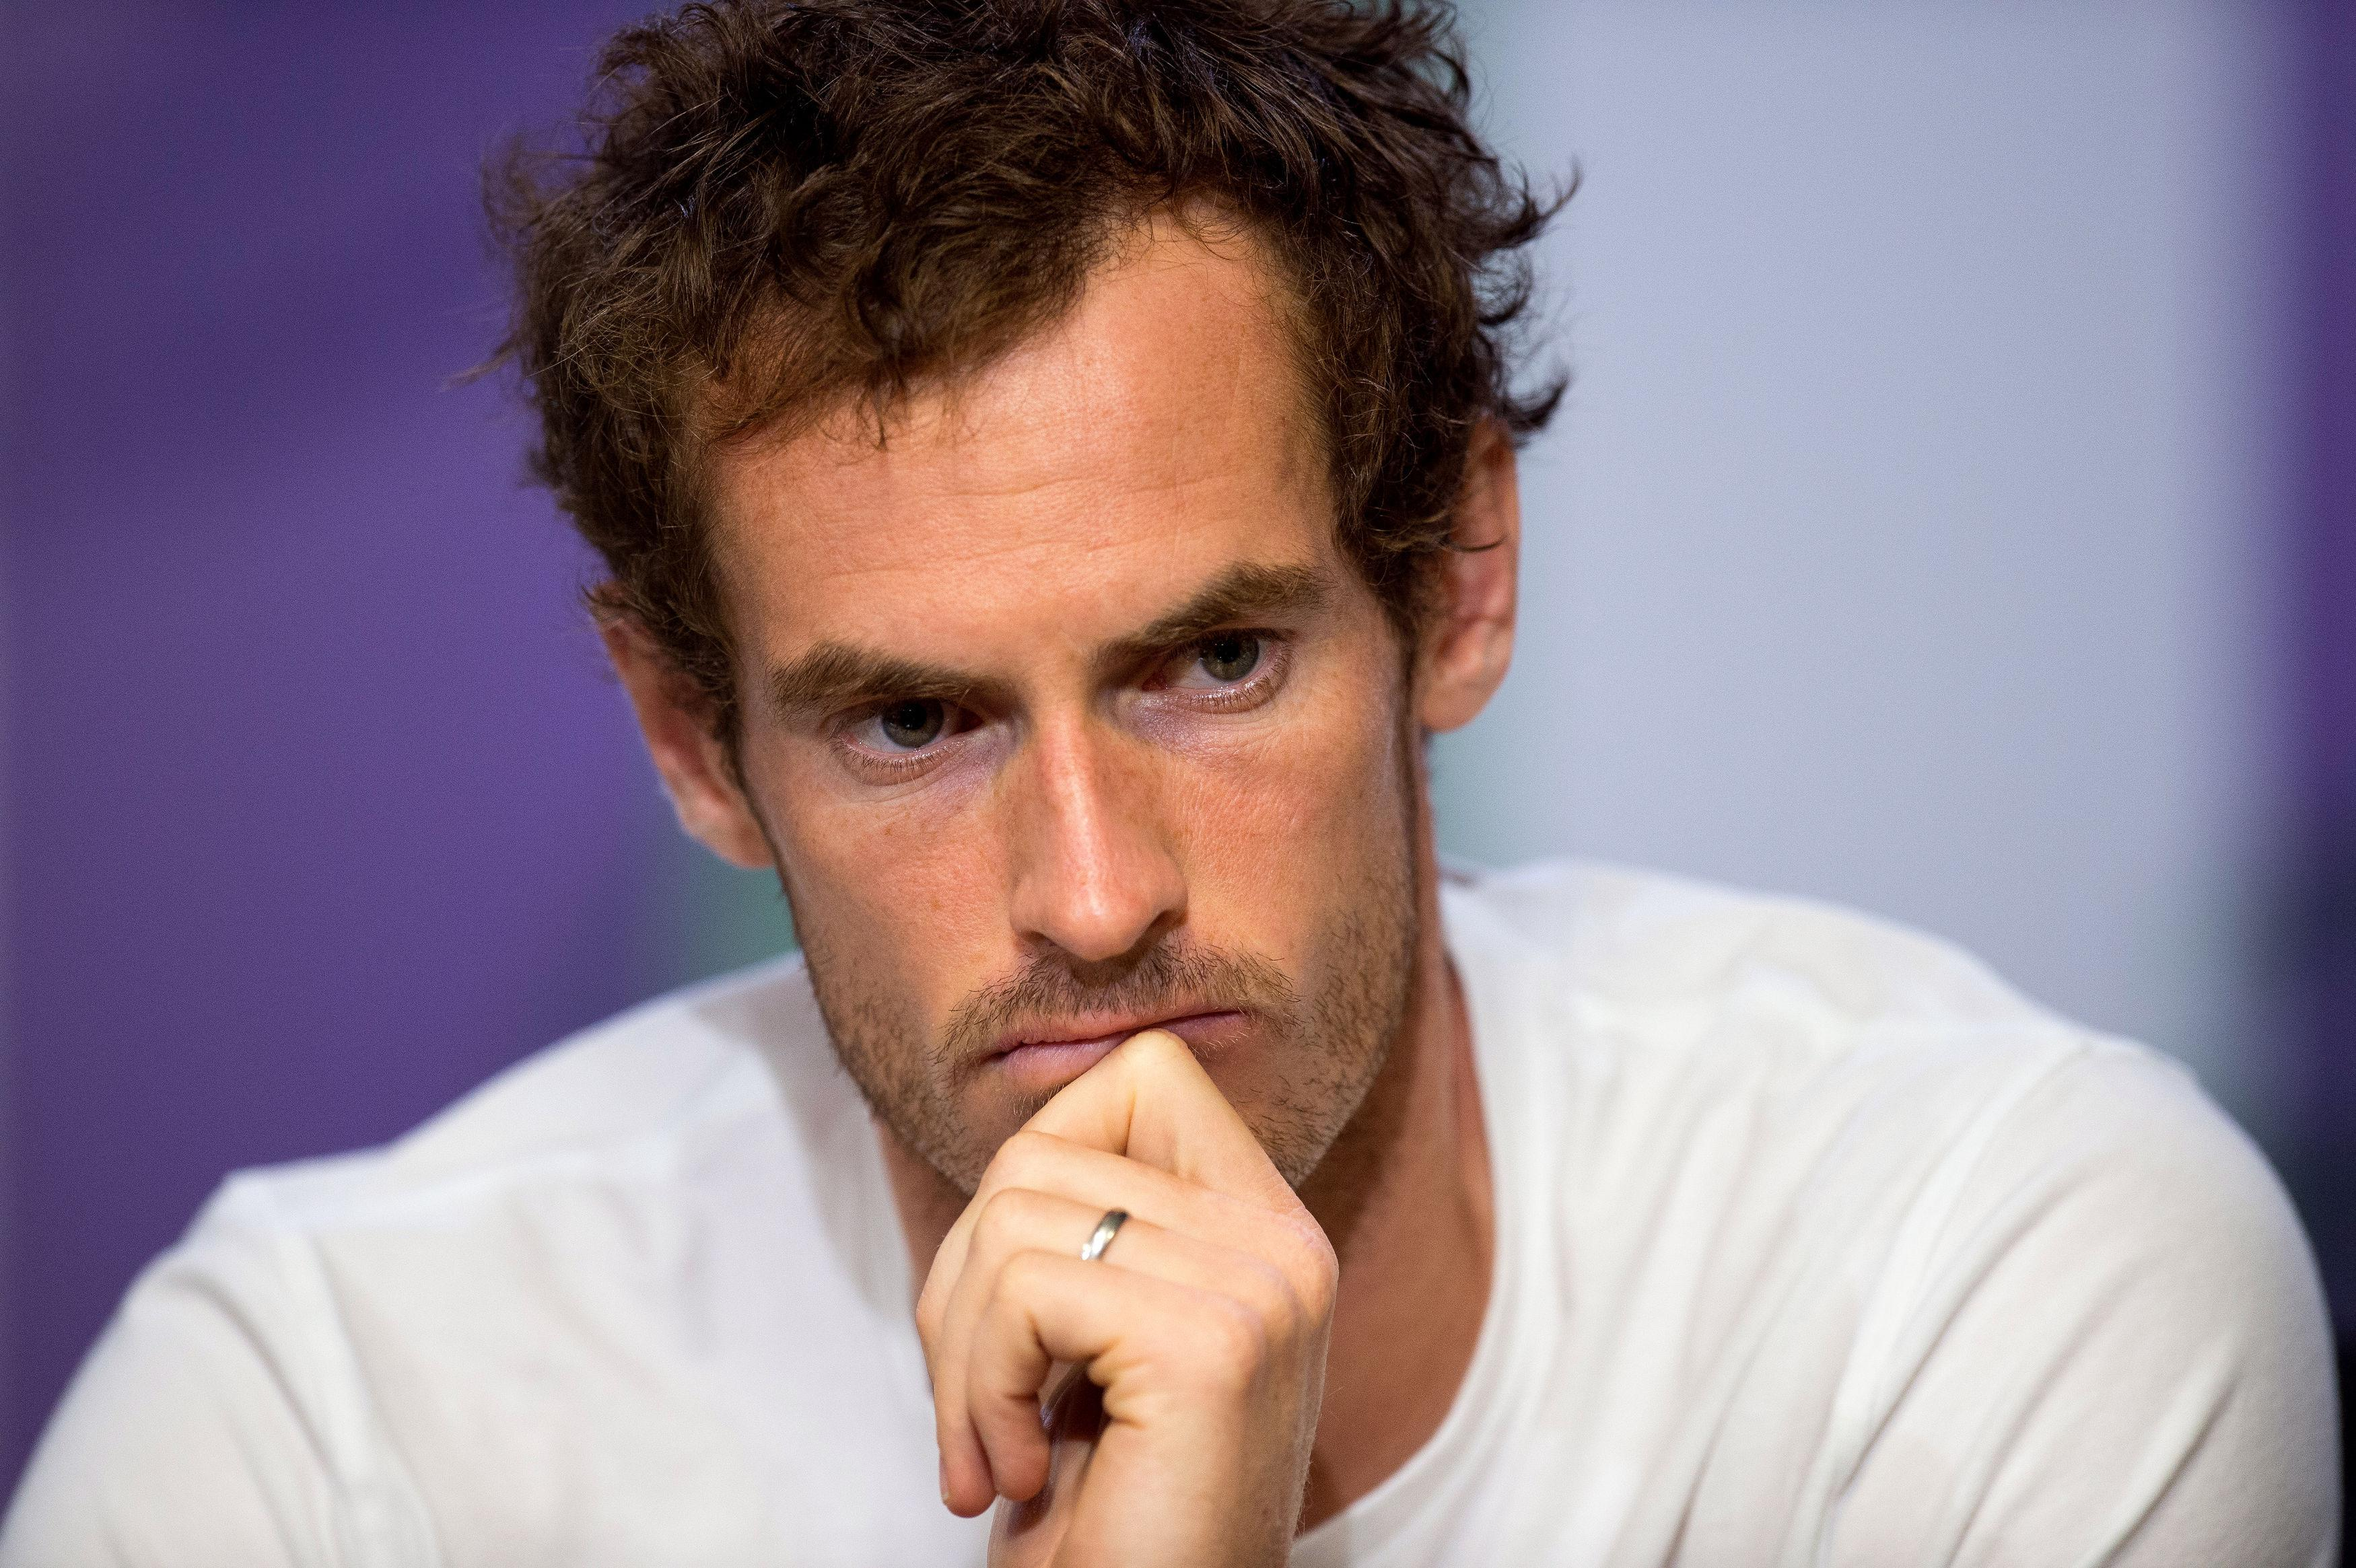 Andy Murray treated fans to a Twitter Q&A when jetlag struck last night